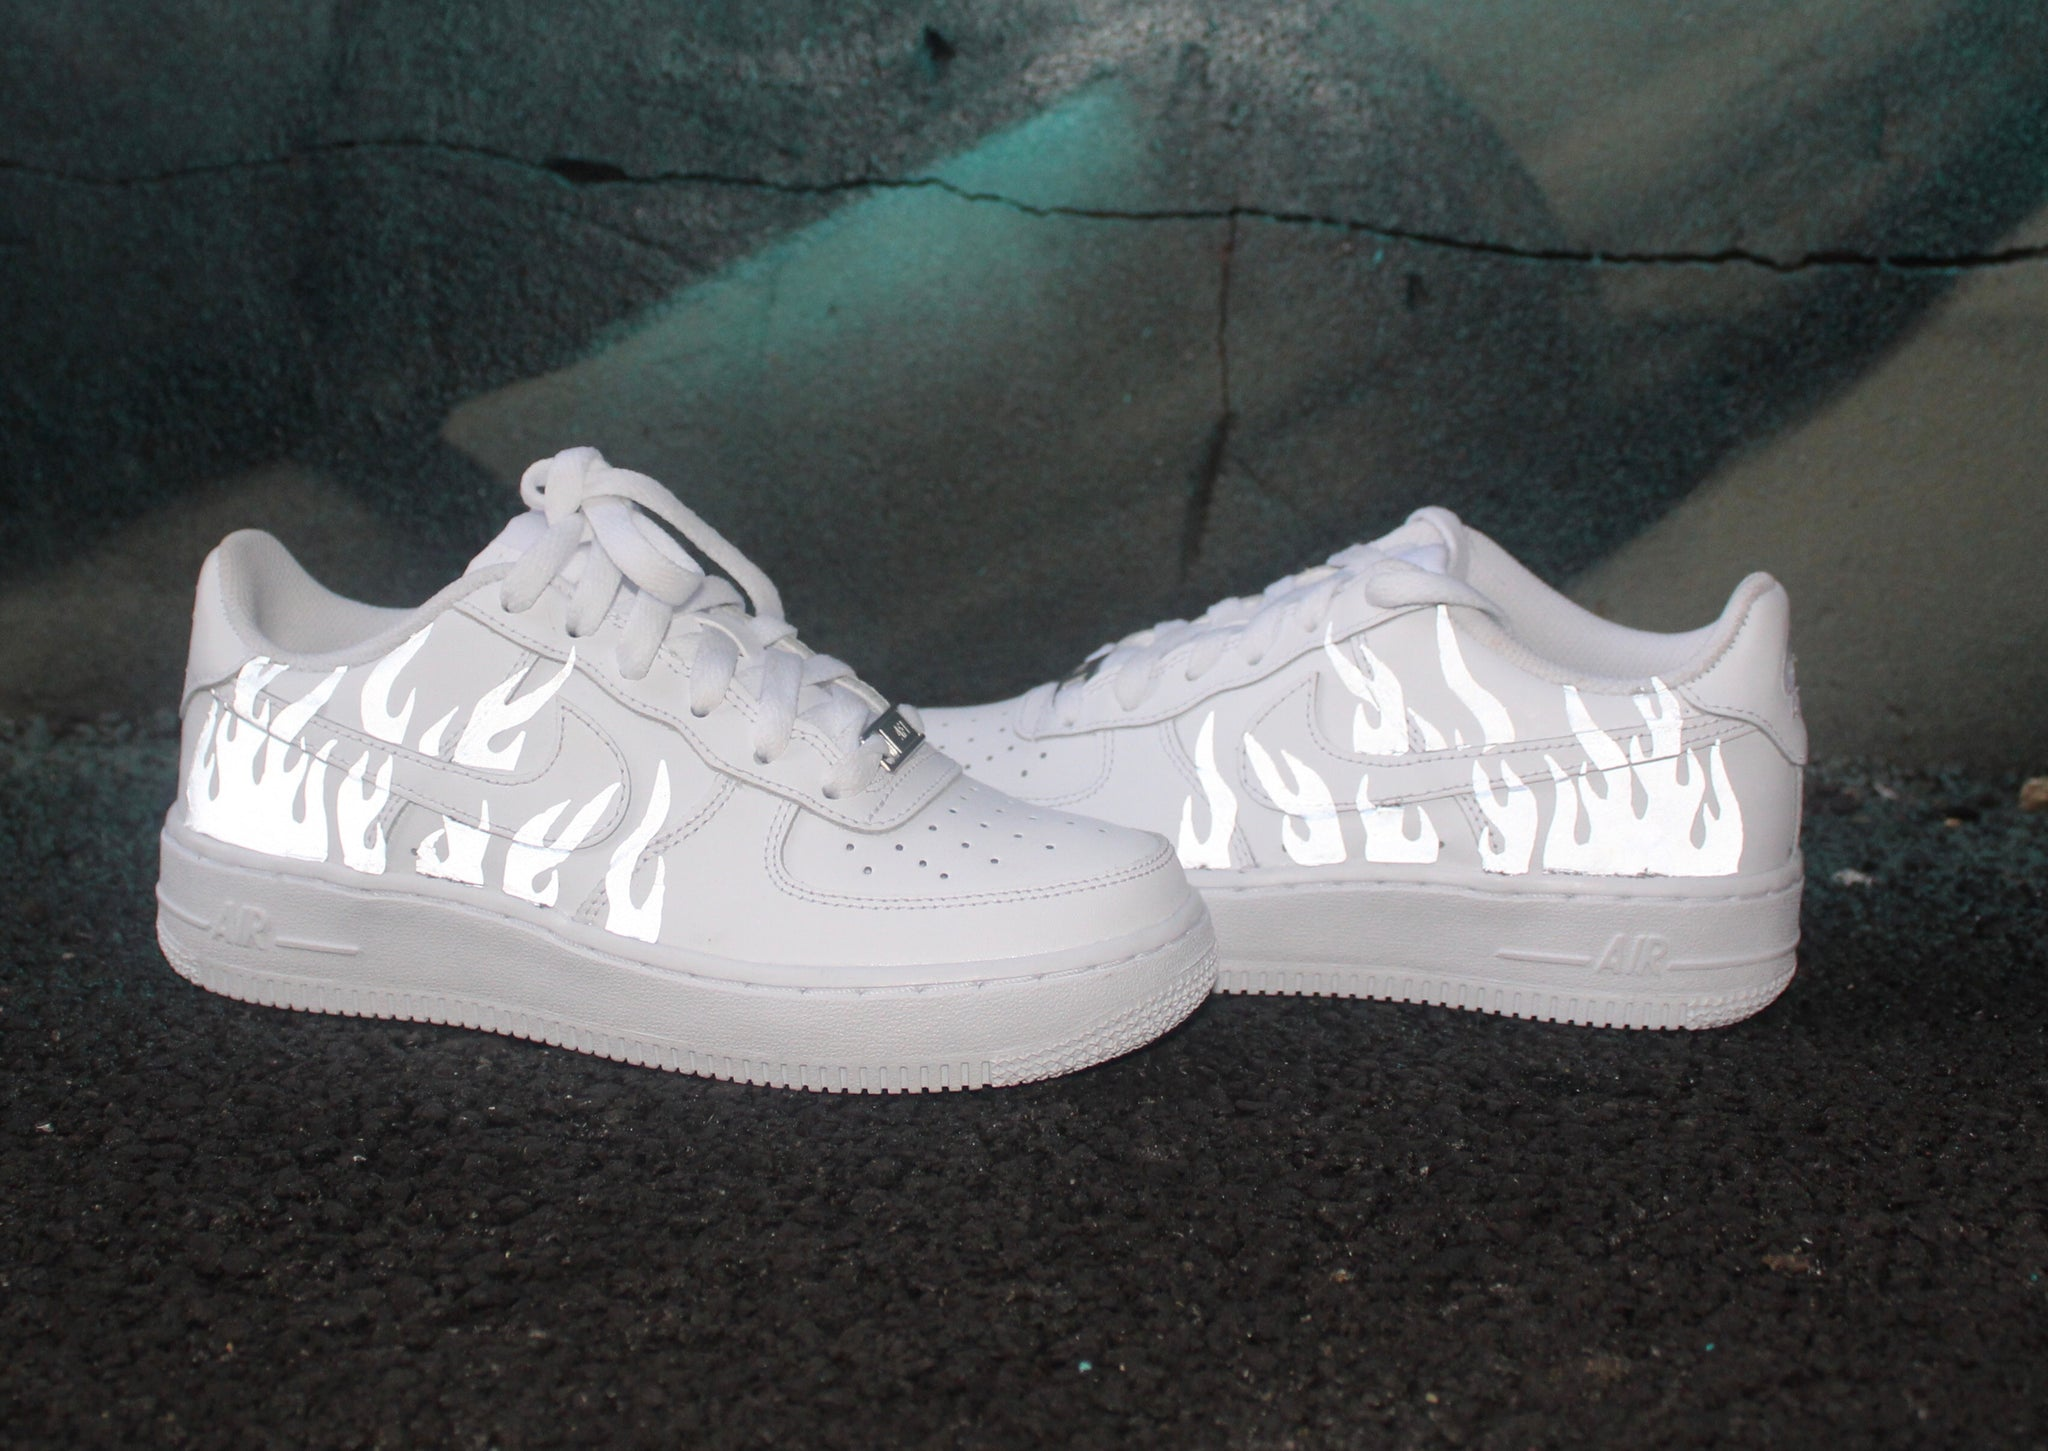 3m Reflective Flames Nike Air Force 1 S The Custom Supplier